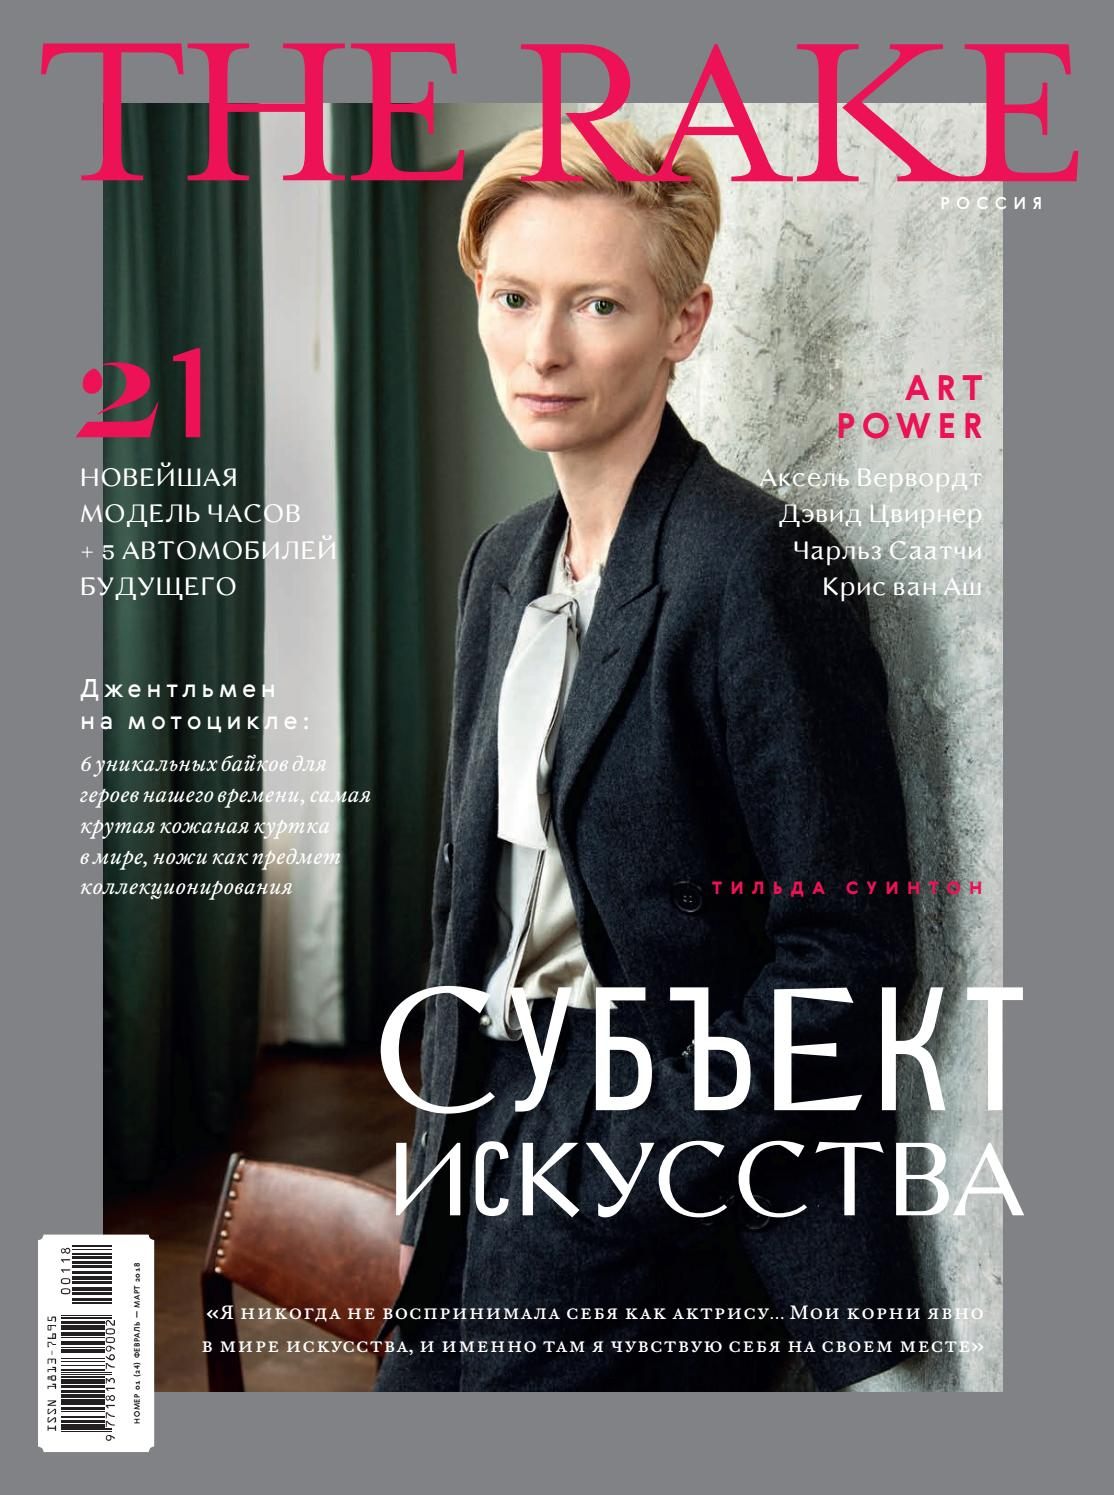 9d4b2f50f70d The Rake magazine Russian edition 24 issue by The Rake - issuu